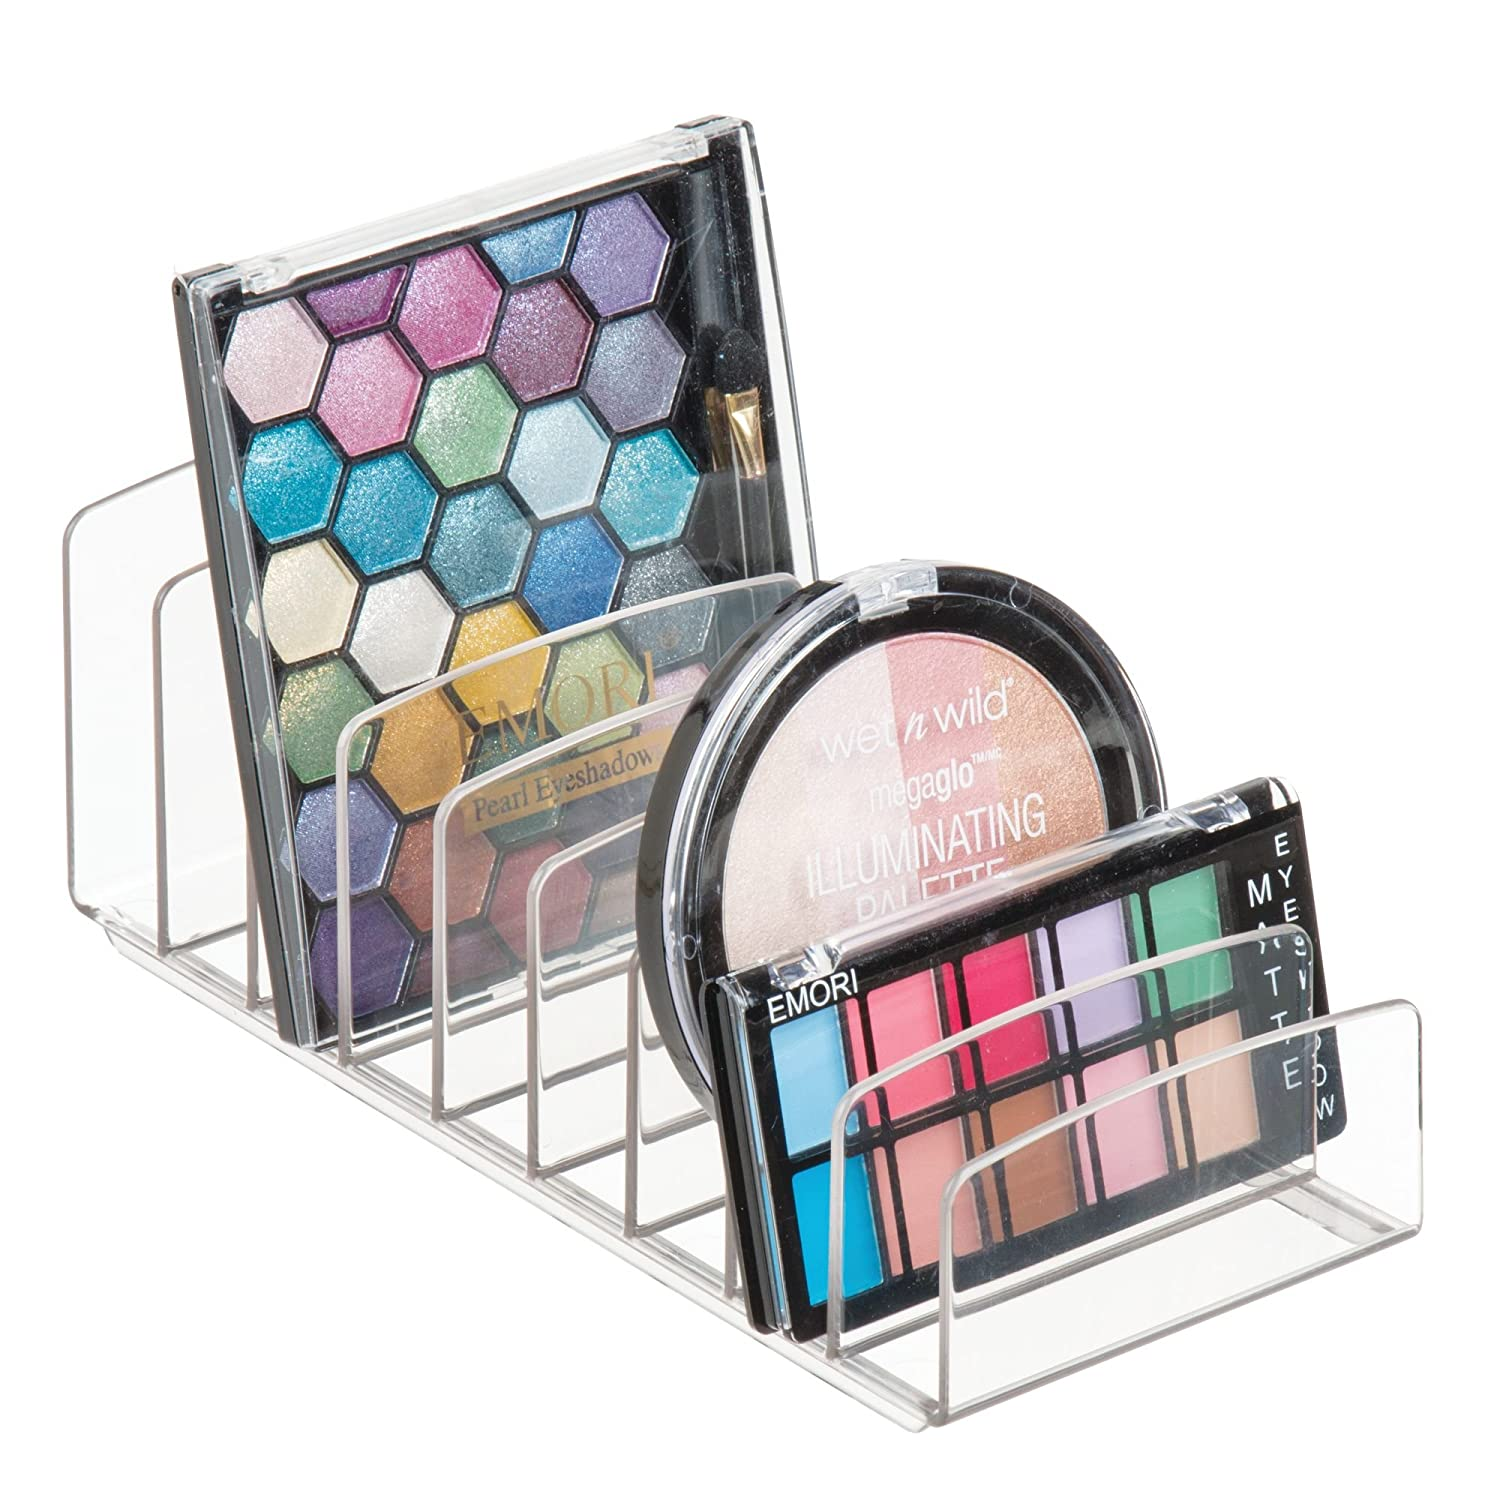 "Inter Design Clarity Vertical Plastic Palette Organizer For Storage Of Cosmetics, Makeup, And Accessories On Vanity, Countertop, Or Cabinet, 9.25"" X 3.86"" X 3.20"", by Inter Design"